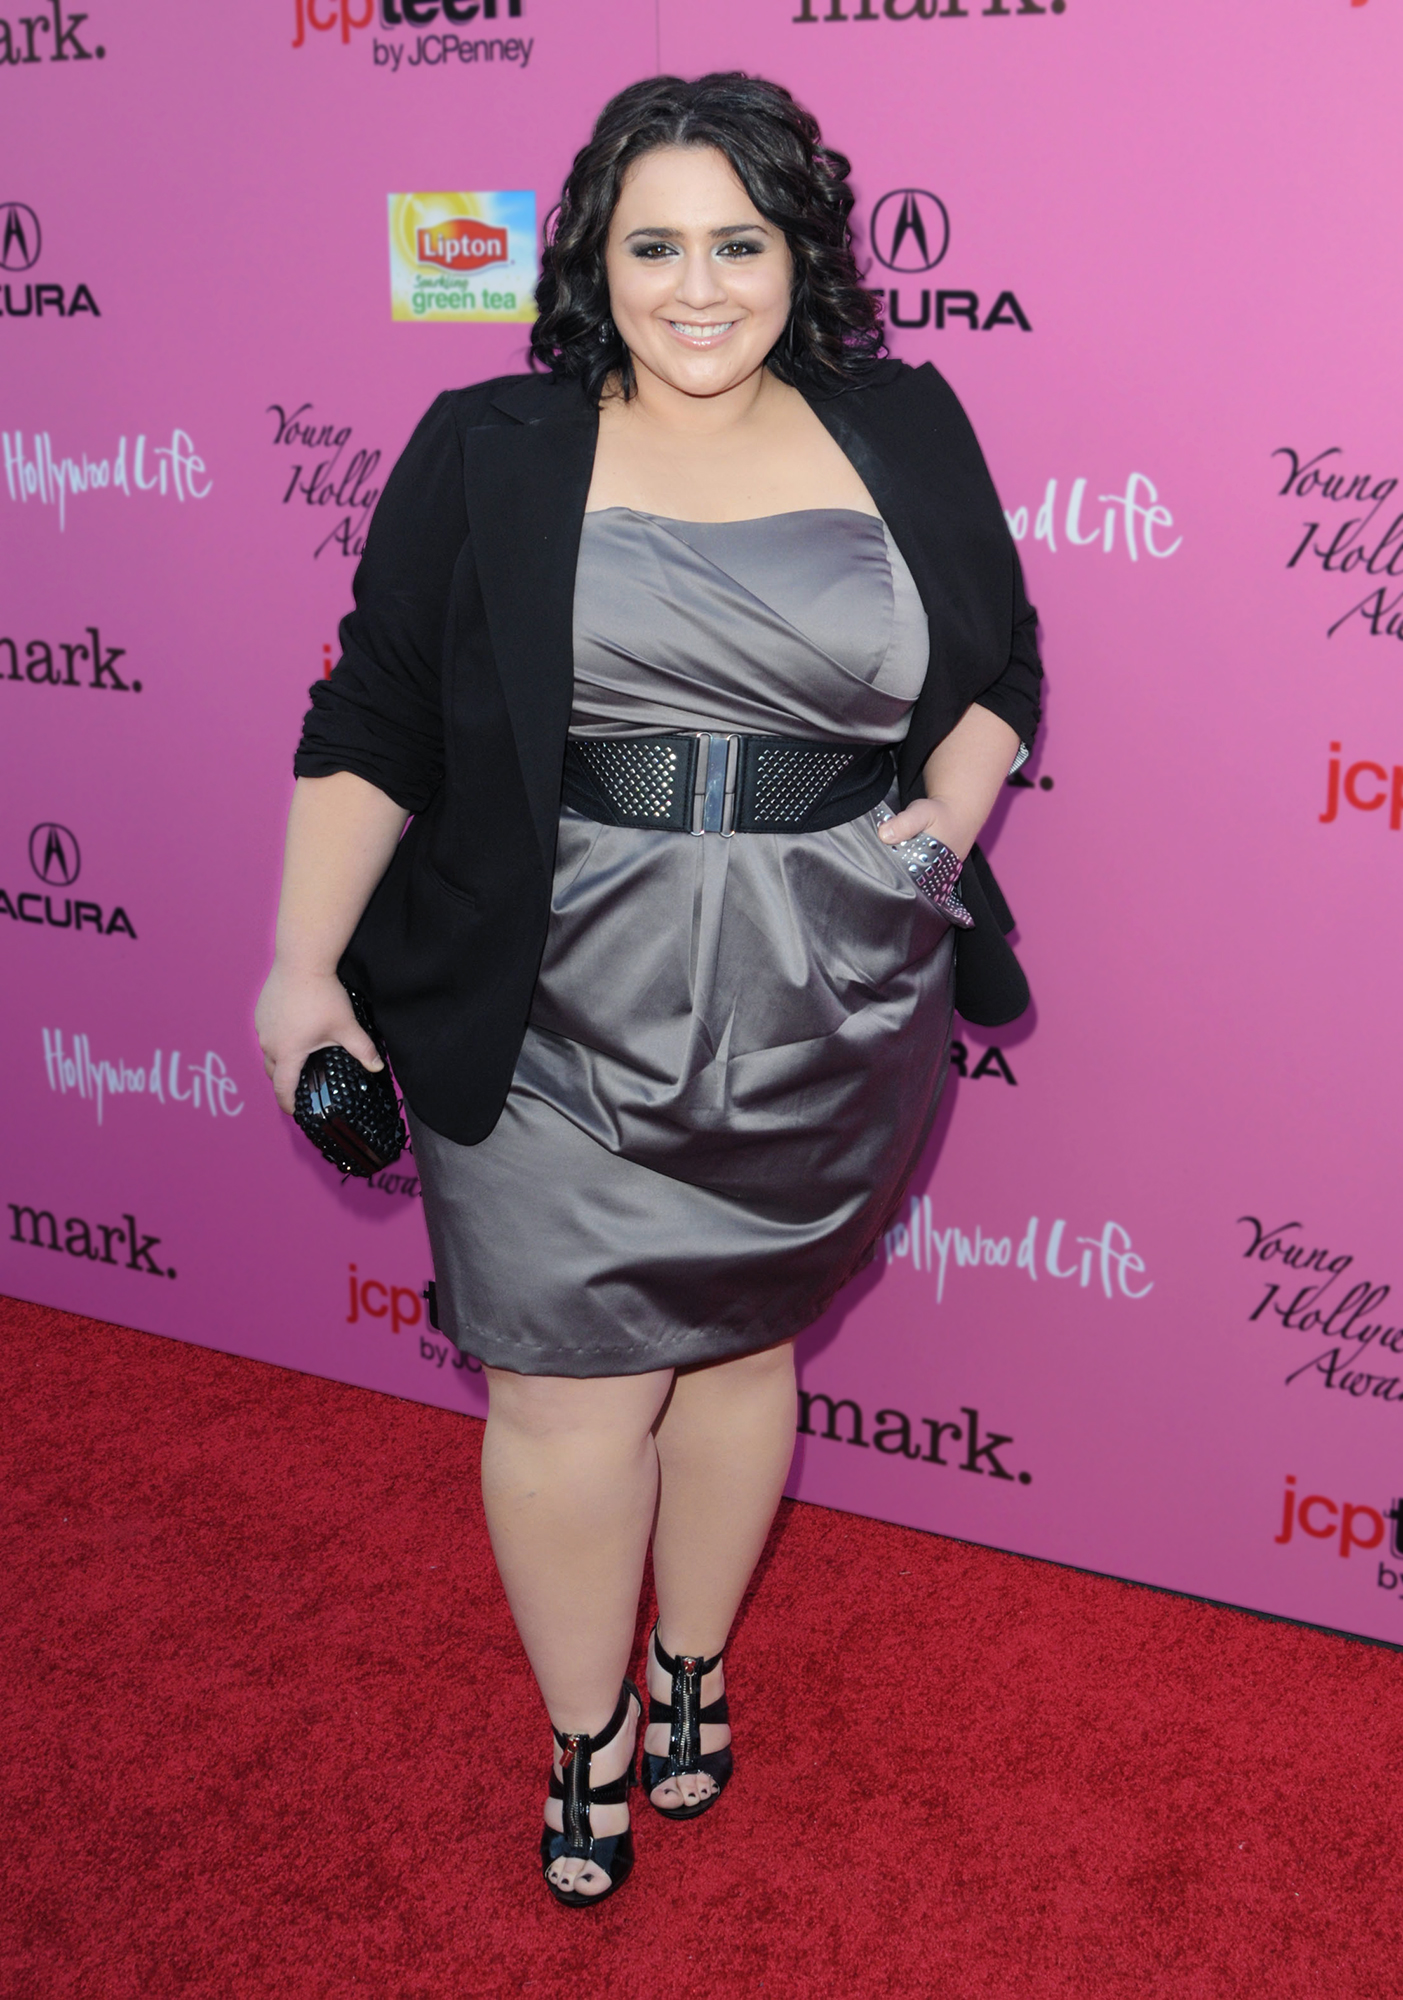 braless Nikki Blonsky naked photo 2017